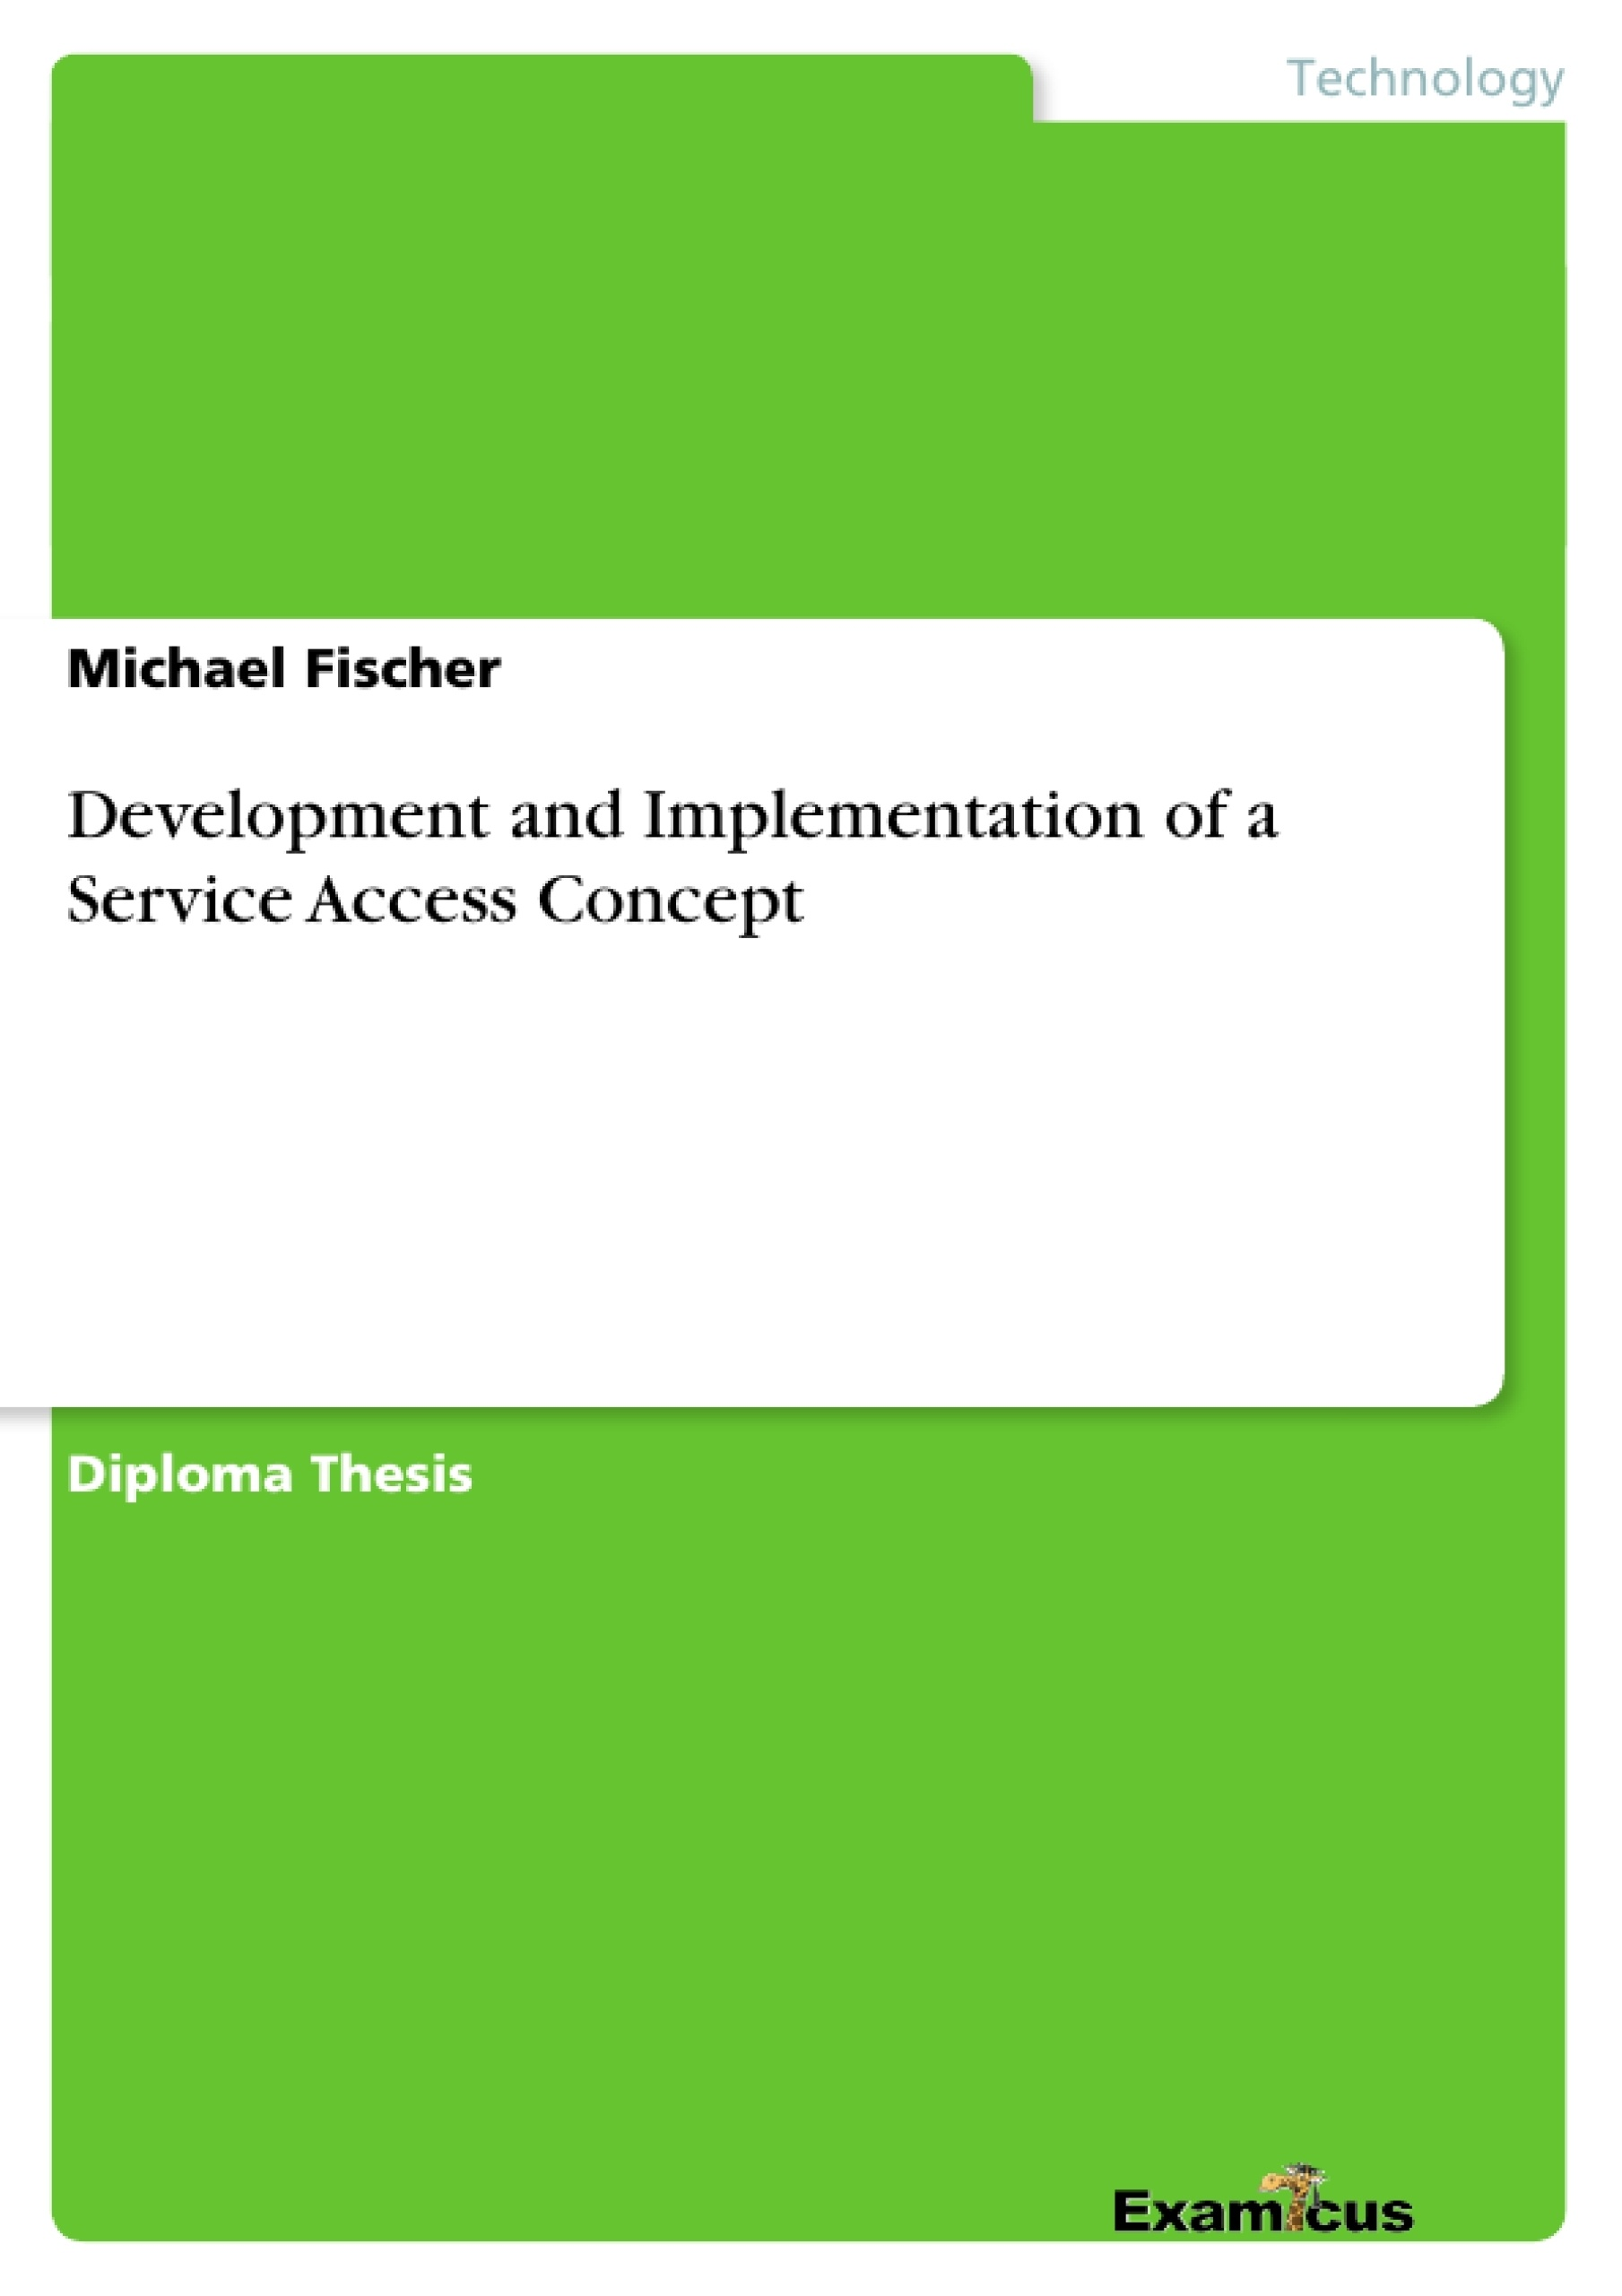 Title: Development and Implementation of a Service Access Concept